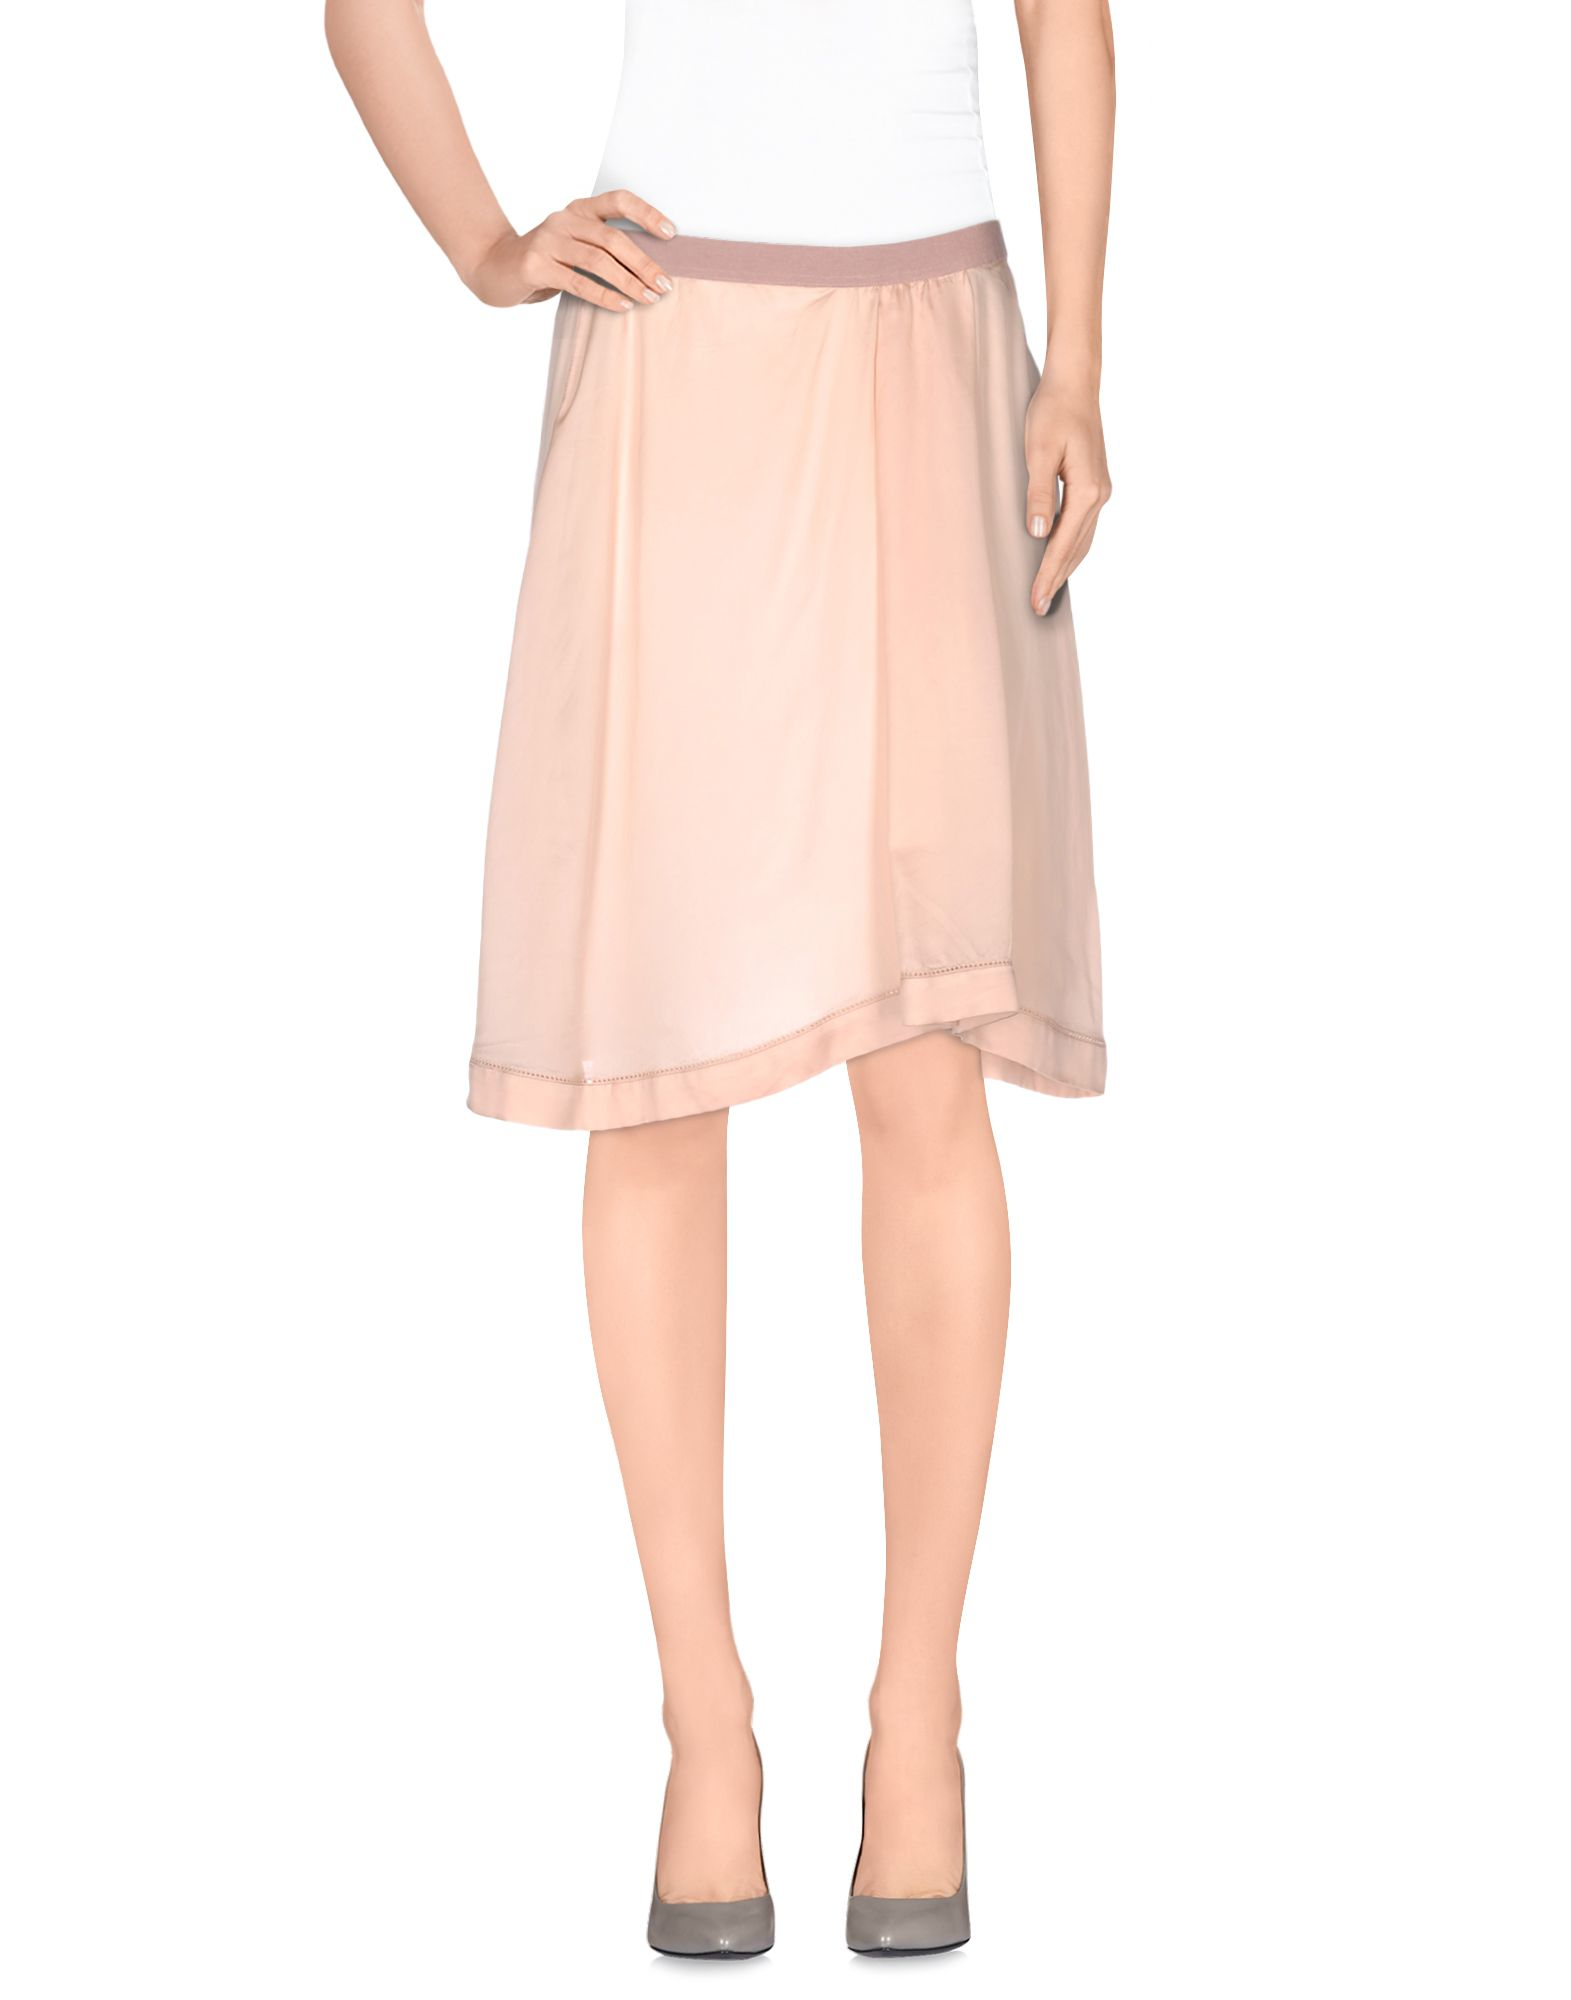 201 toile marant knee length skirt in pink lyst